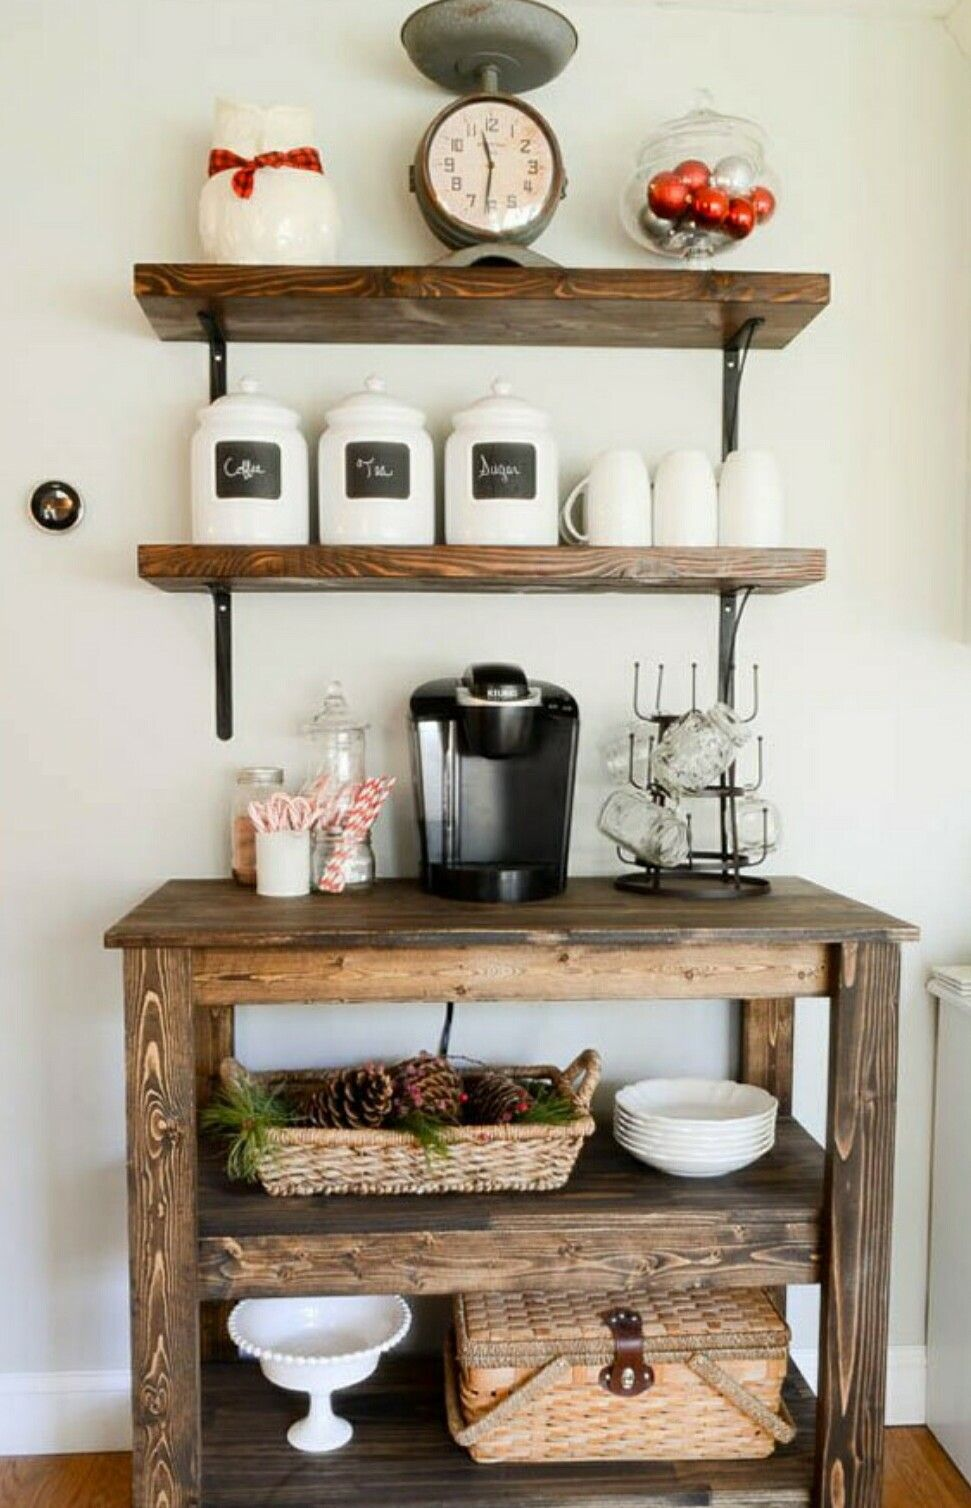 Pin by Mary Jacobs on rustic farmhouse decor Coffee bar